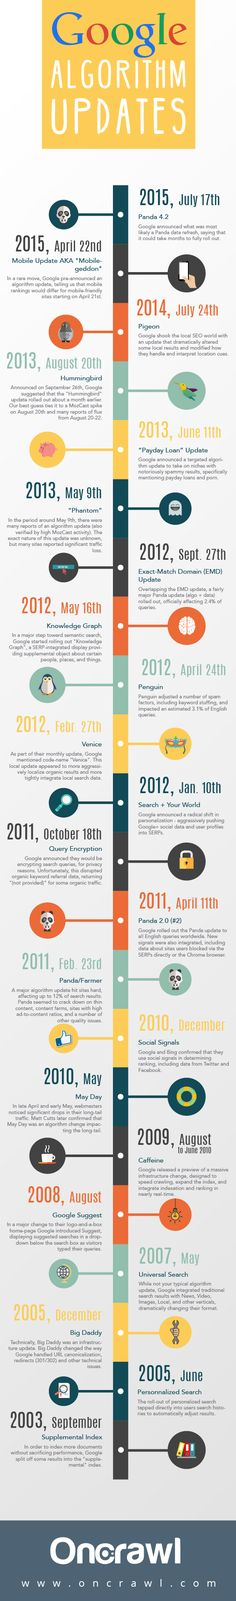 #Infographic timeline of #Google algorithm updates over the years.